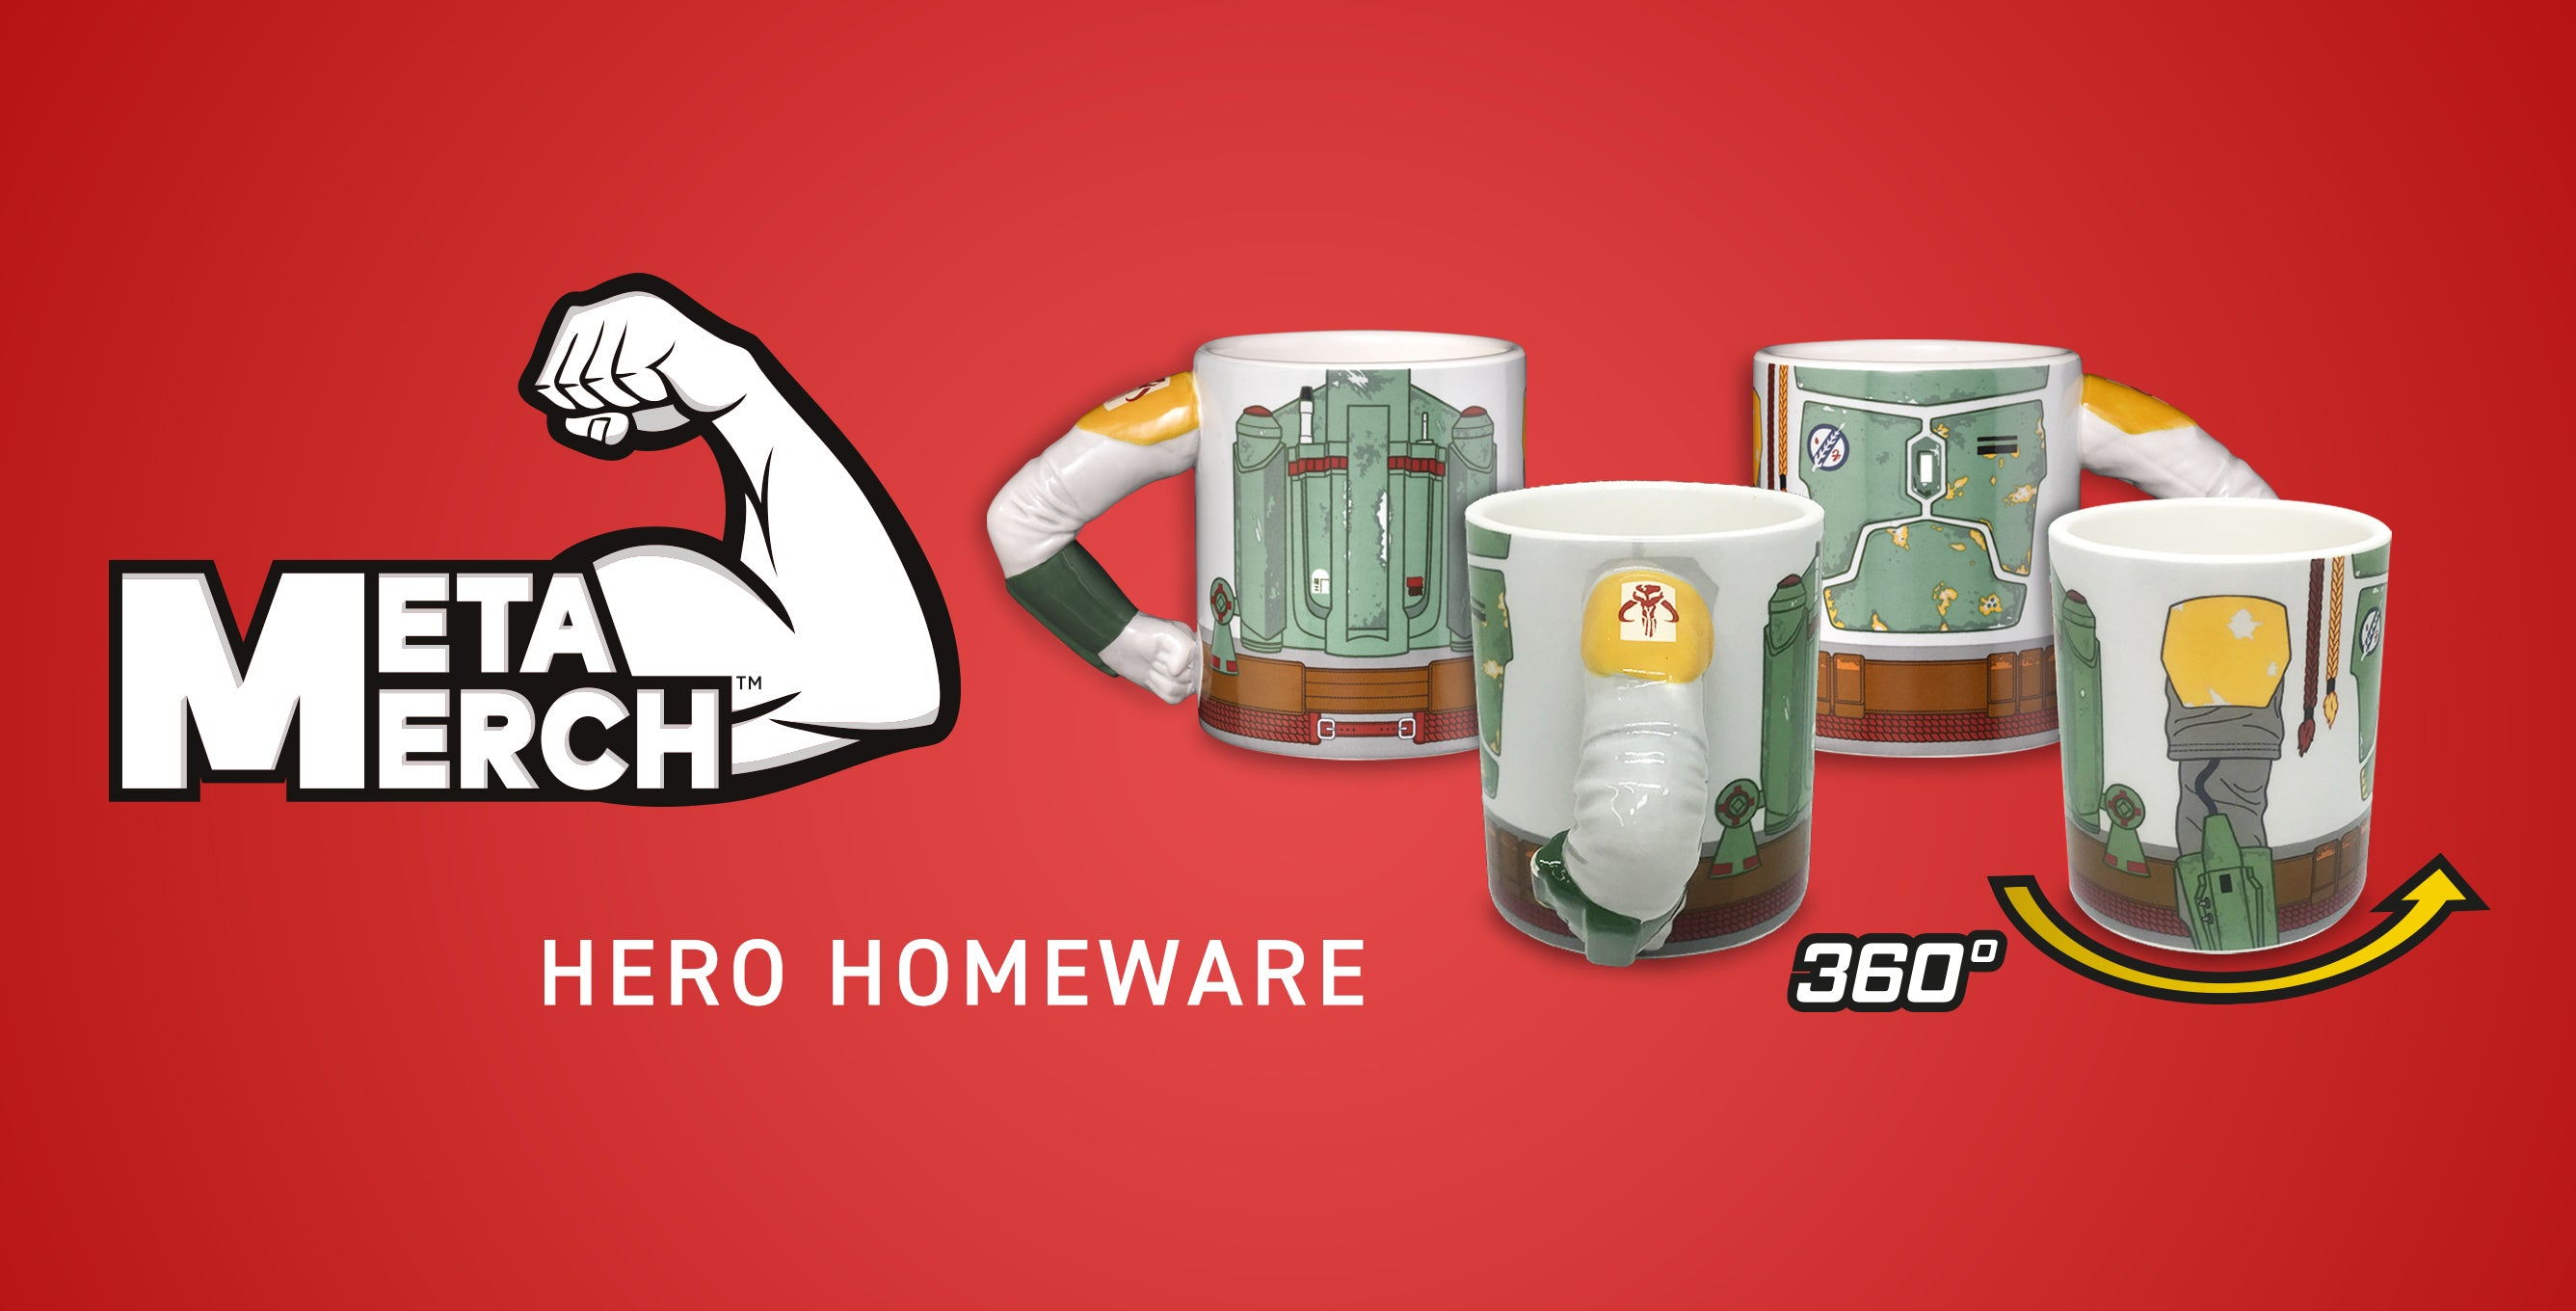 MetaMerch, Hero Homeware